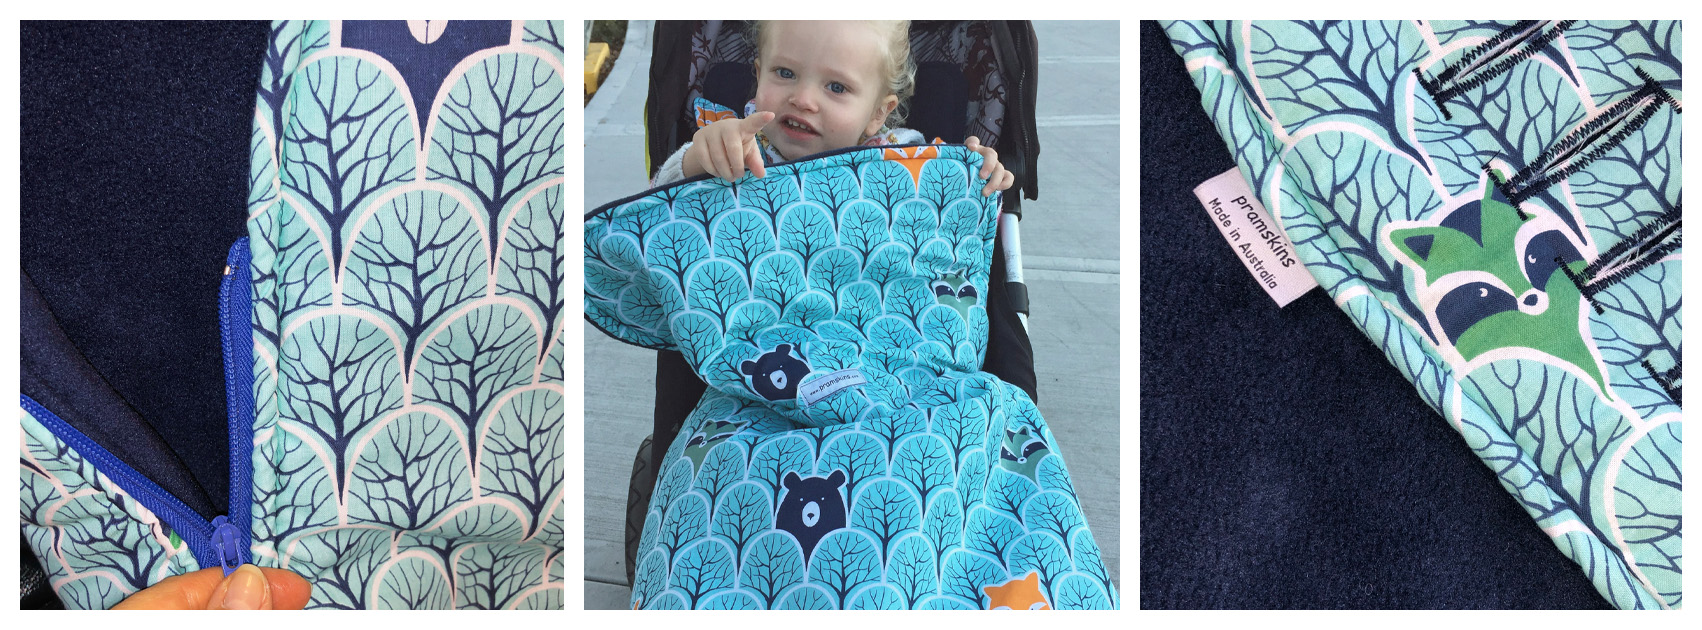 category-collage-peekaboo-blue-snuggle-bag-footmuff.jpg